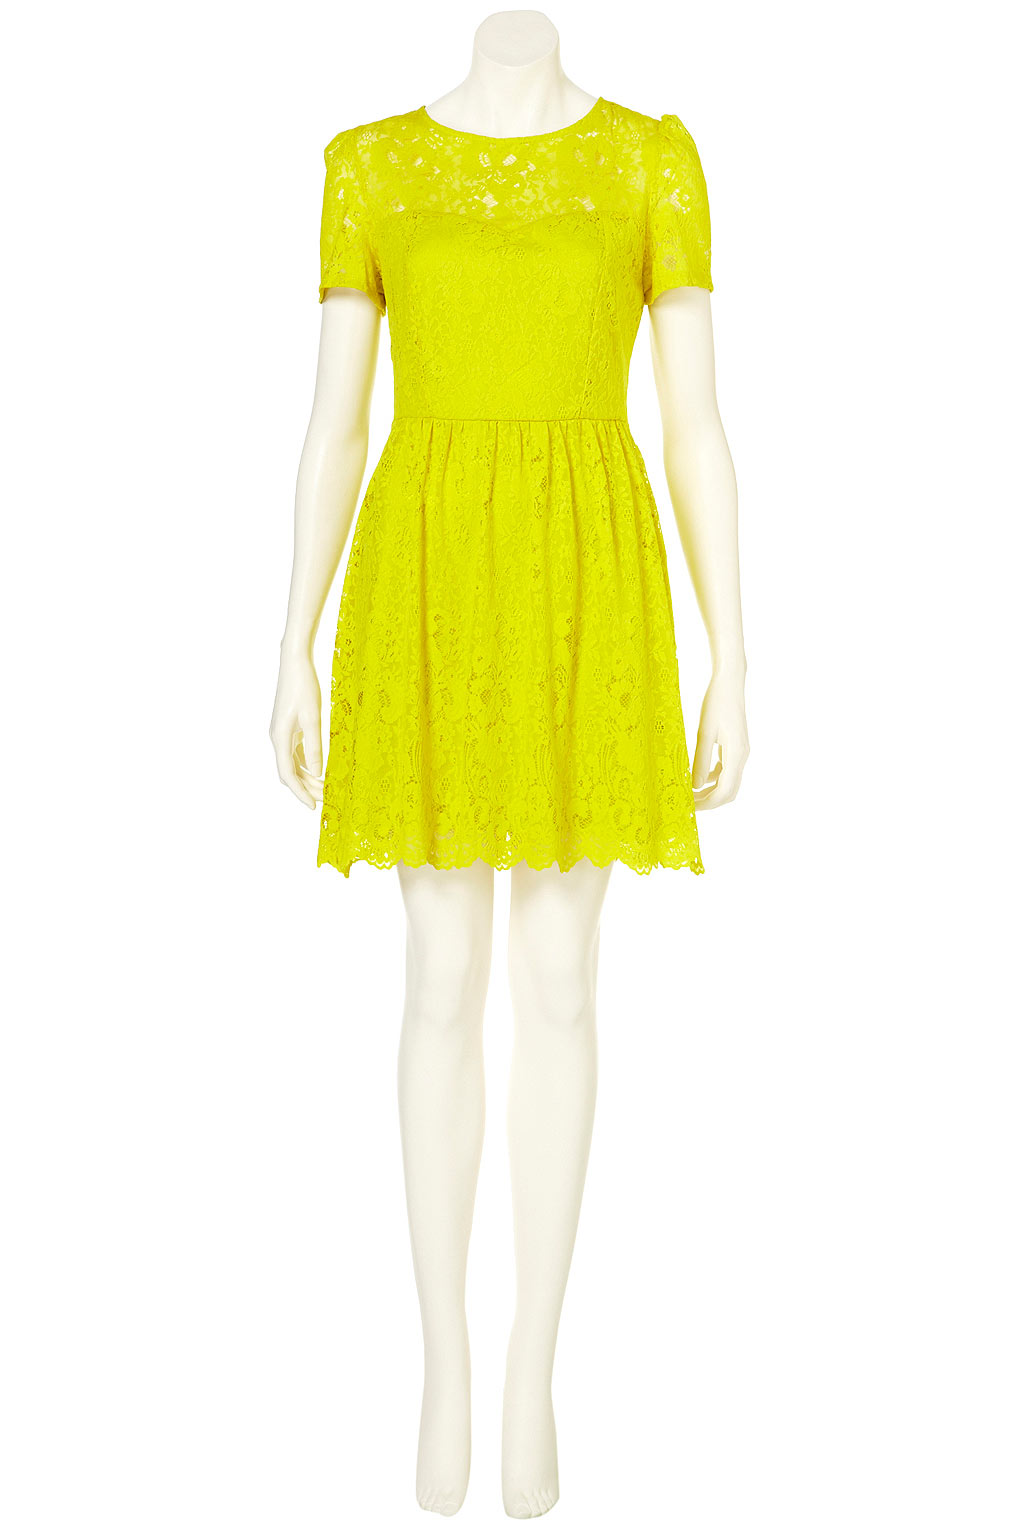 Lyst - TOPSHOP Neon Lace Flippy Dress in Yellow